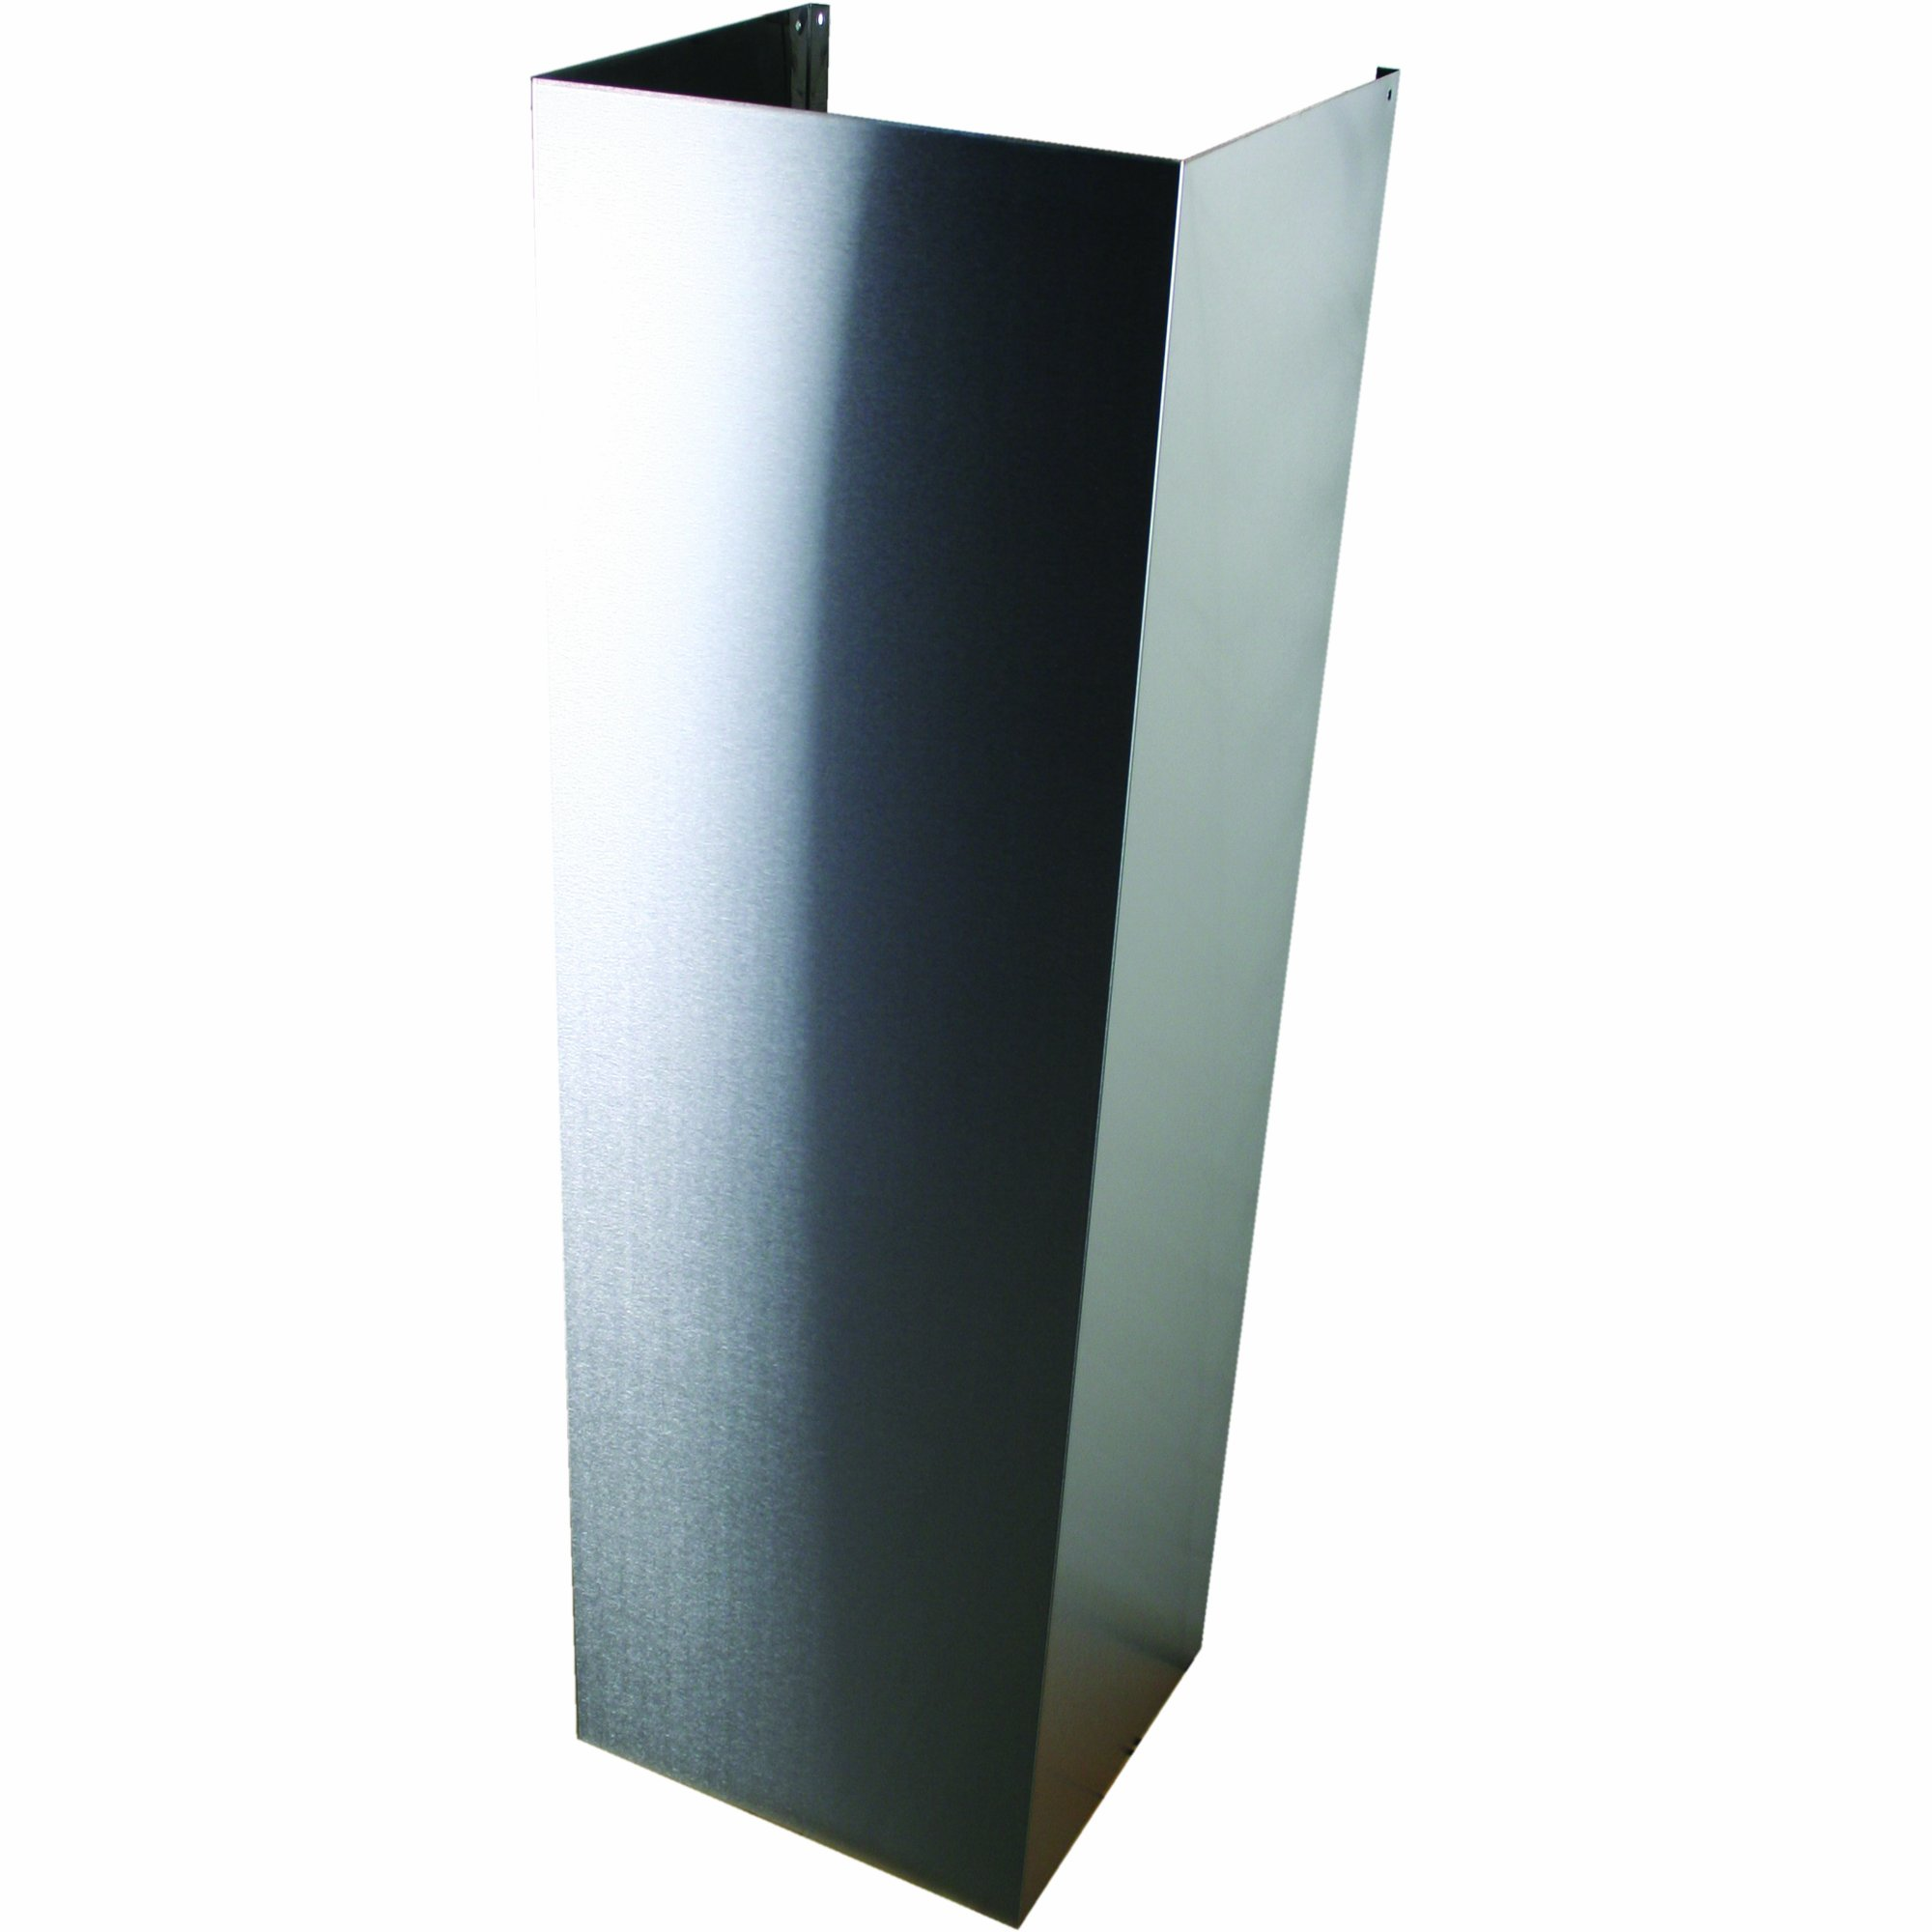 Yosemite Home Decor MDC38CR Flue-Extension for Contemporary Series Hoods, 79-Inch, Stainless Steel by Yosemite Home Decor